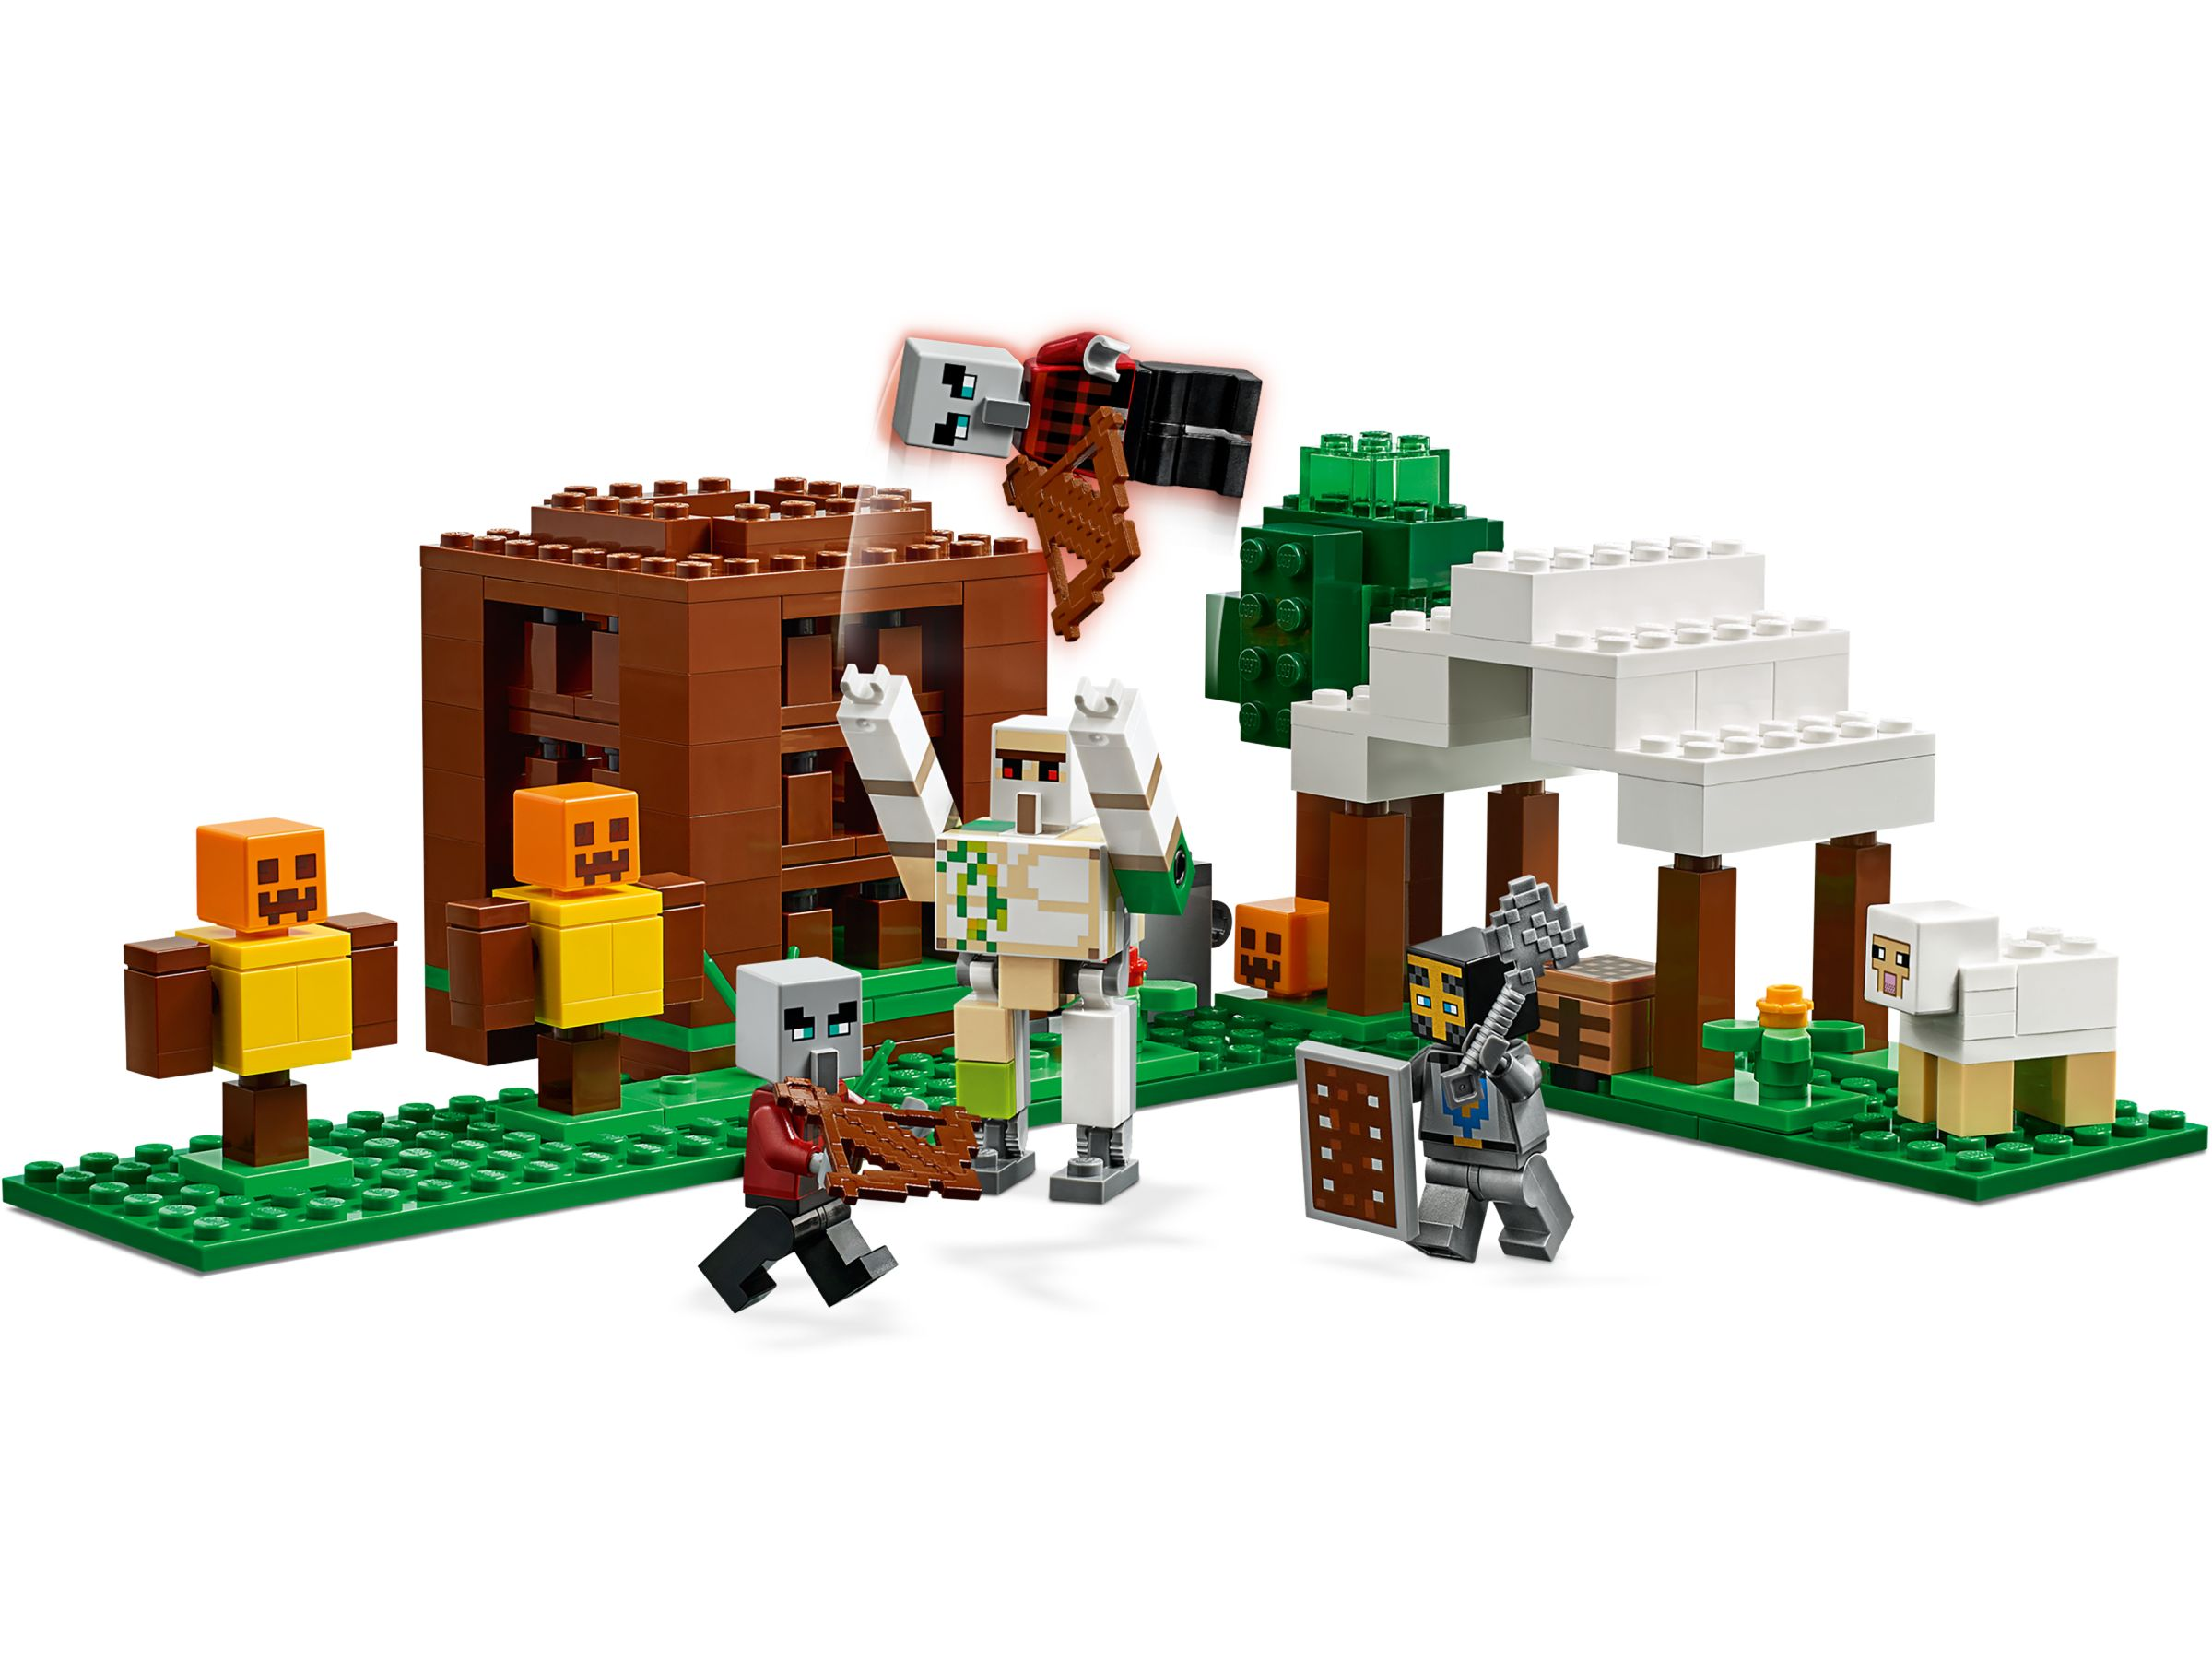 LEGO Minecraft 21159 The Raider Outpost LEGO_21159_alt3.jpg